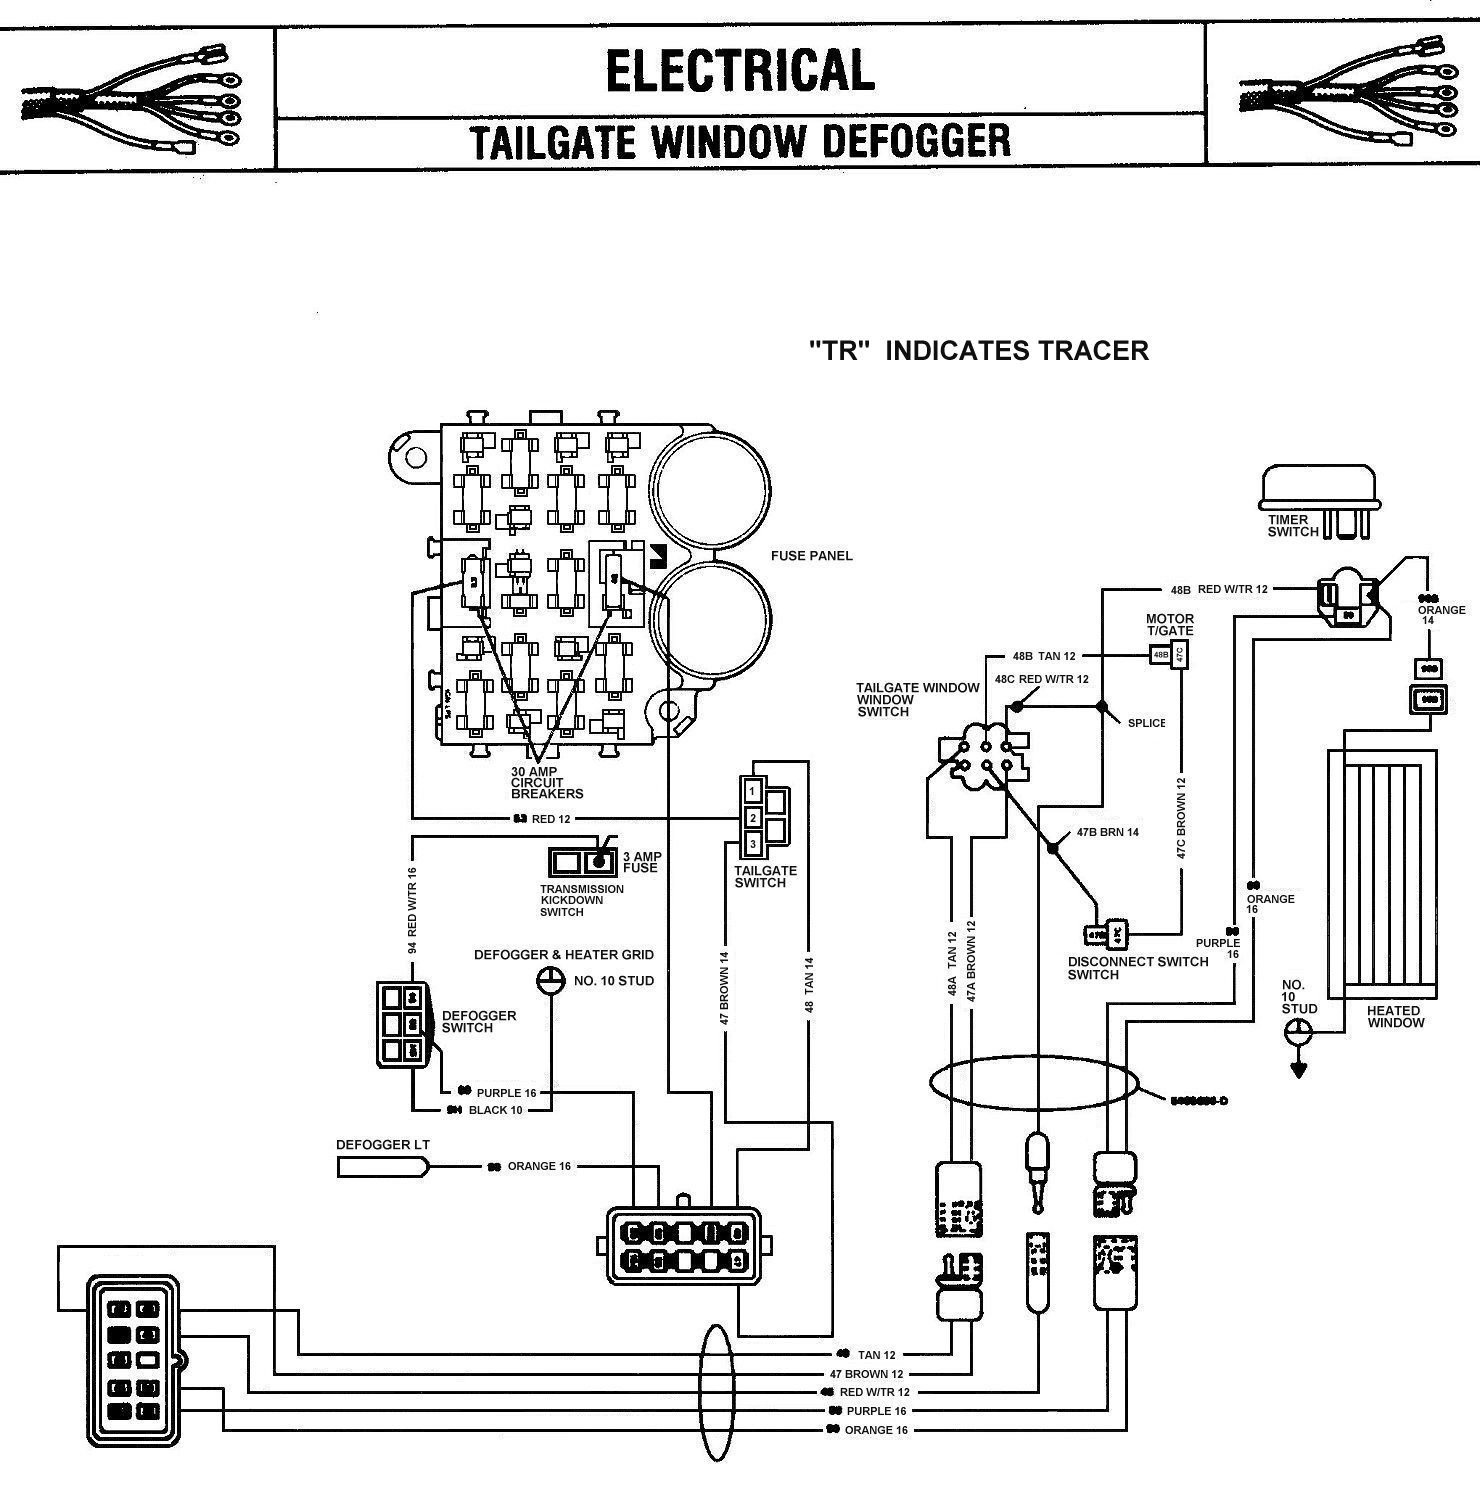 Jeep Wagoneer Wiring Diagram Data Wiring Schema 1982 Jeep CJ7 Wiring-Diagram  84 Cj7 Wiring Diagram